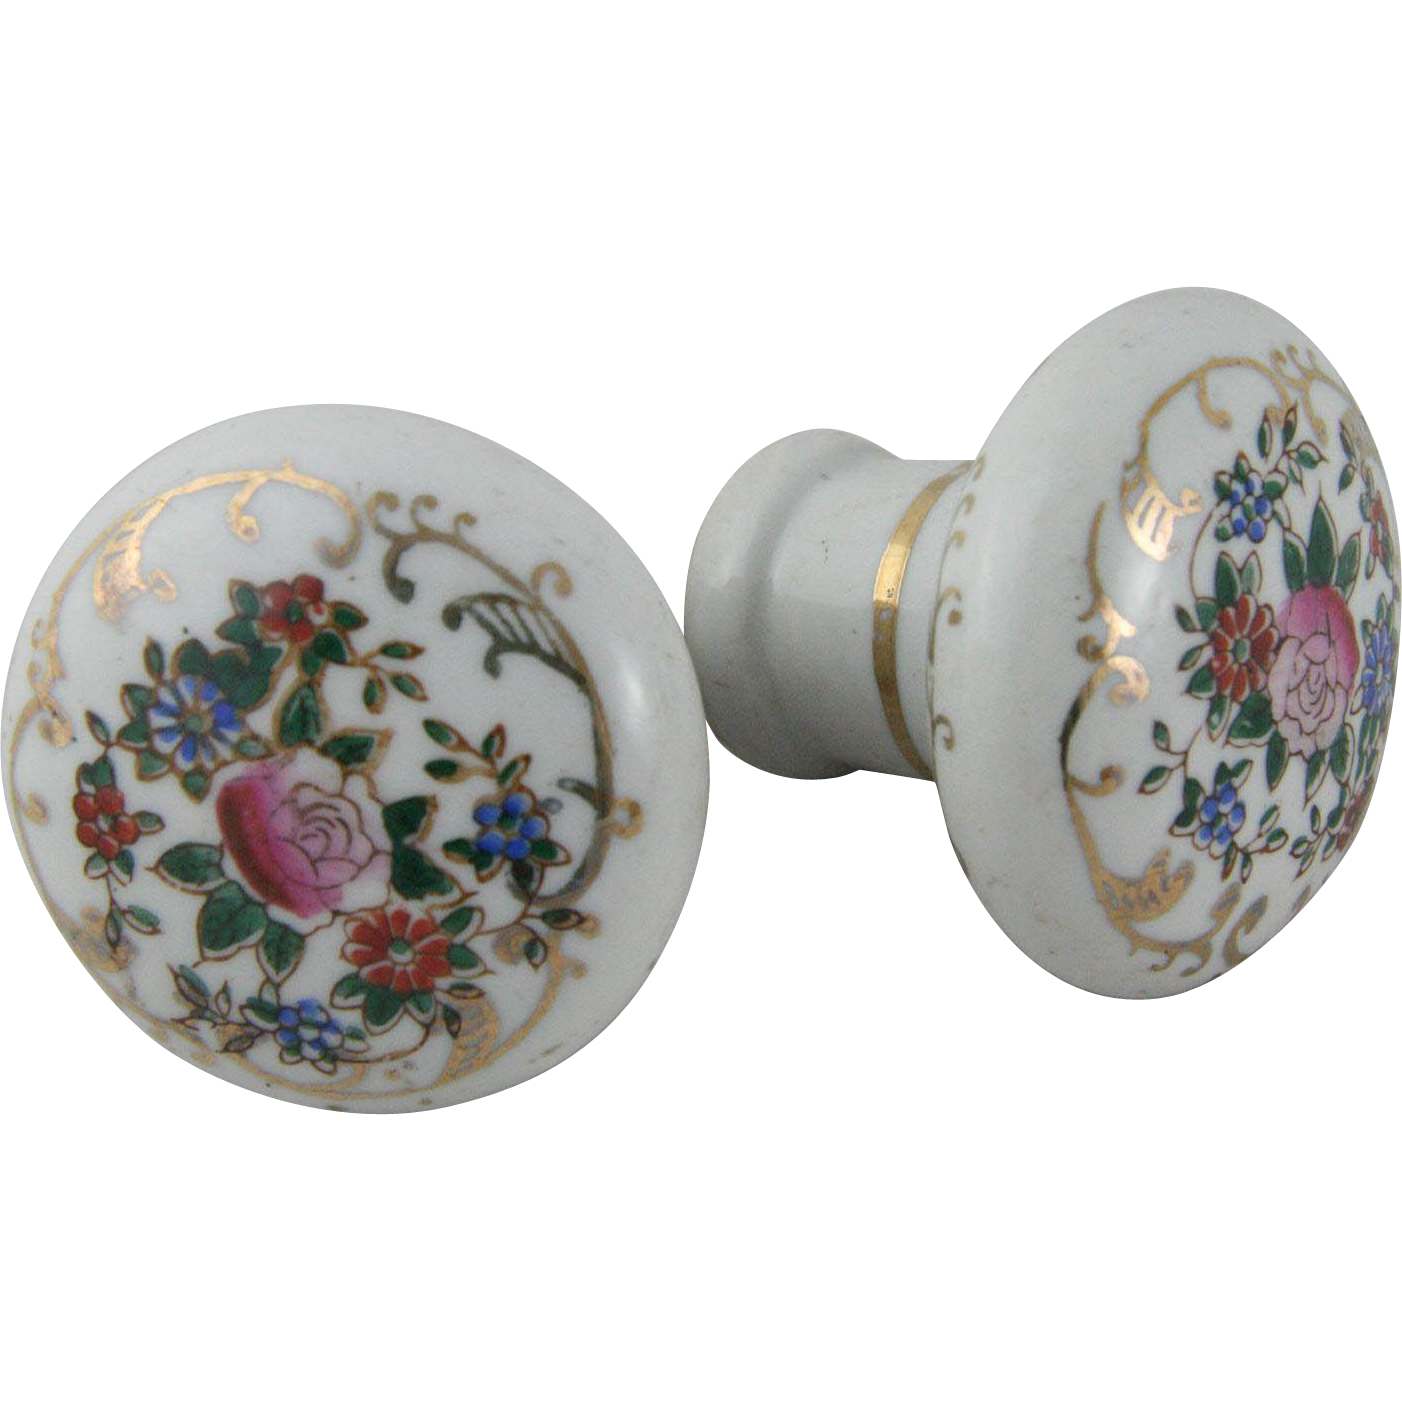 Dainty porcelain painted floral doorknobs